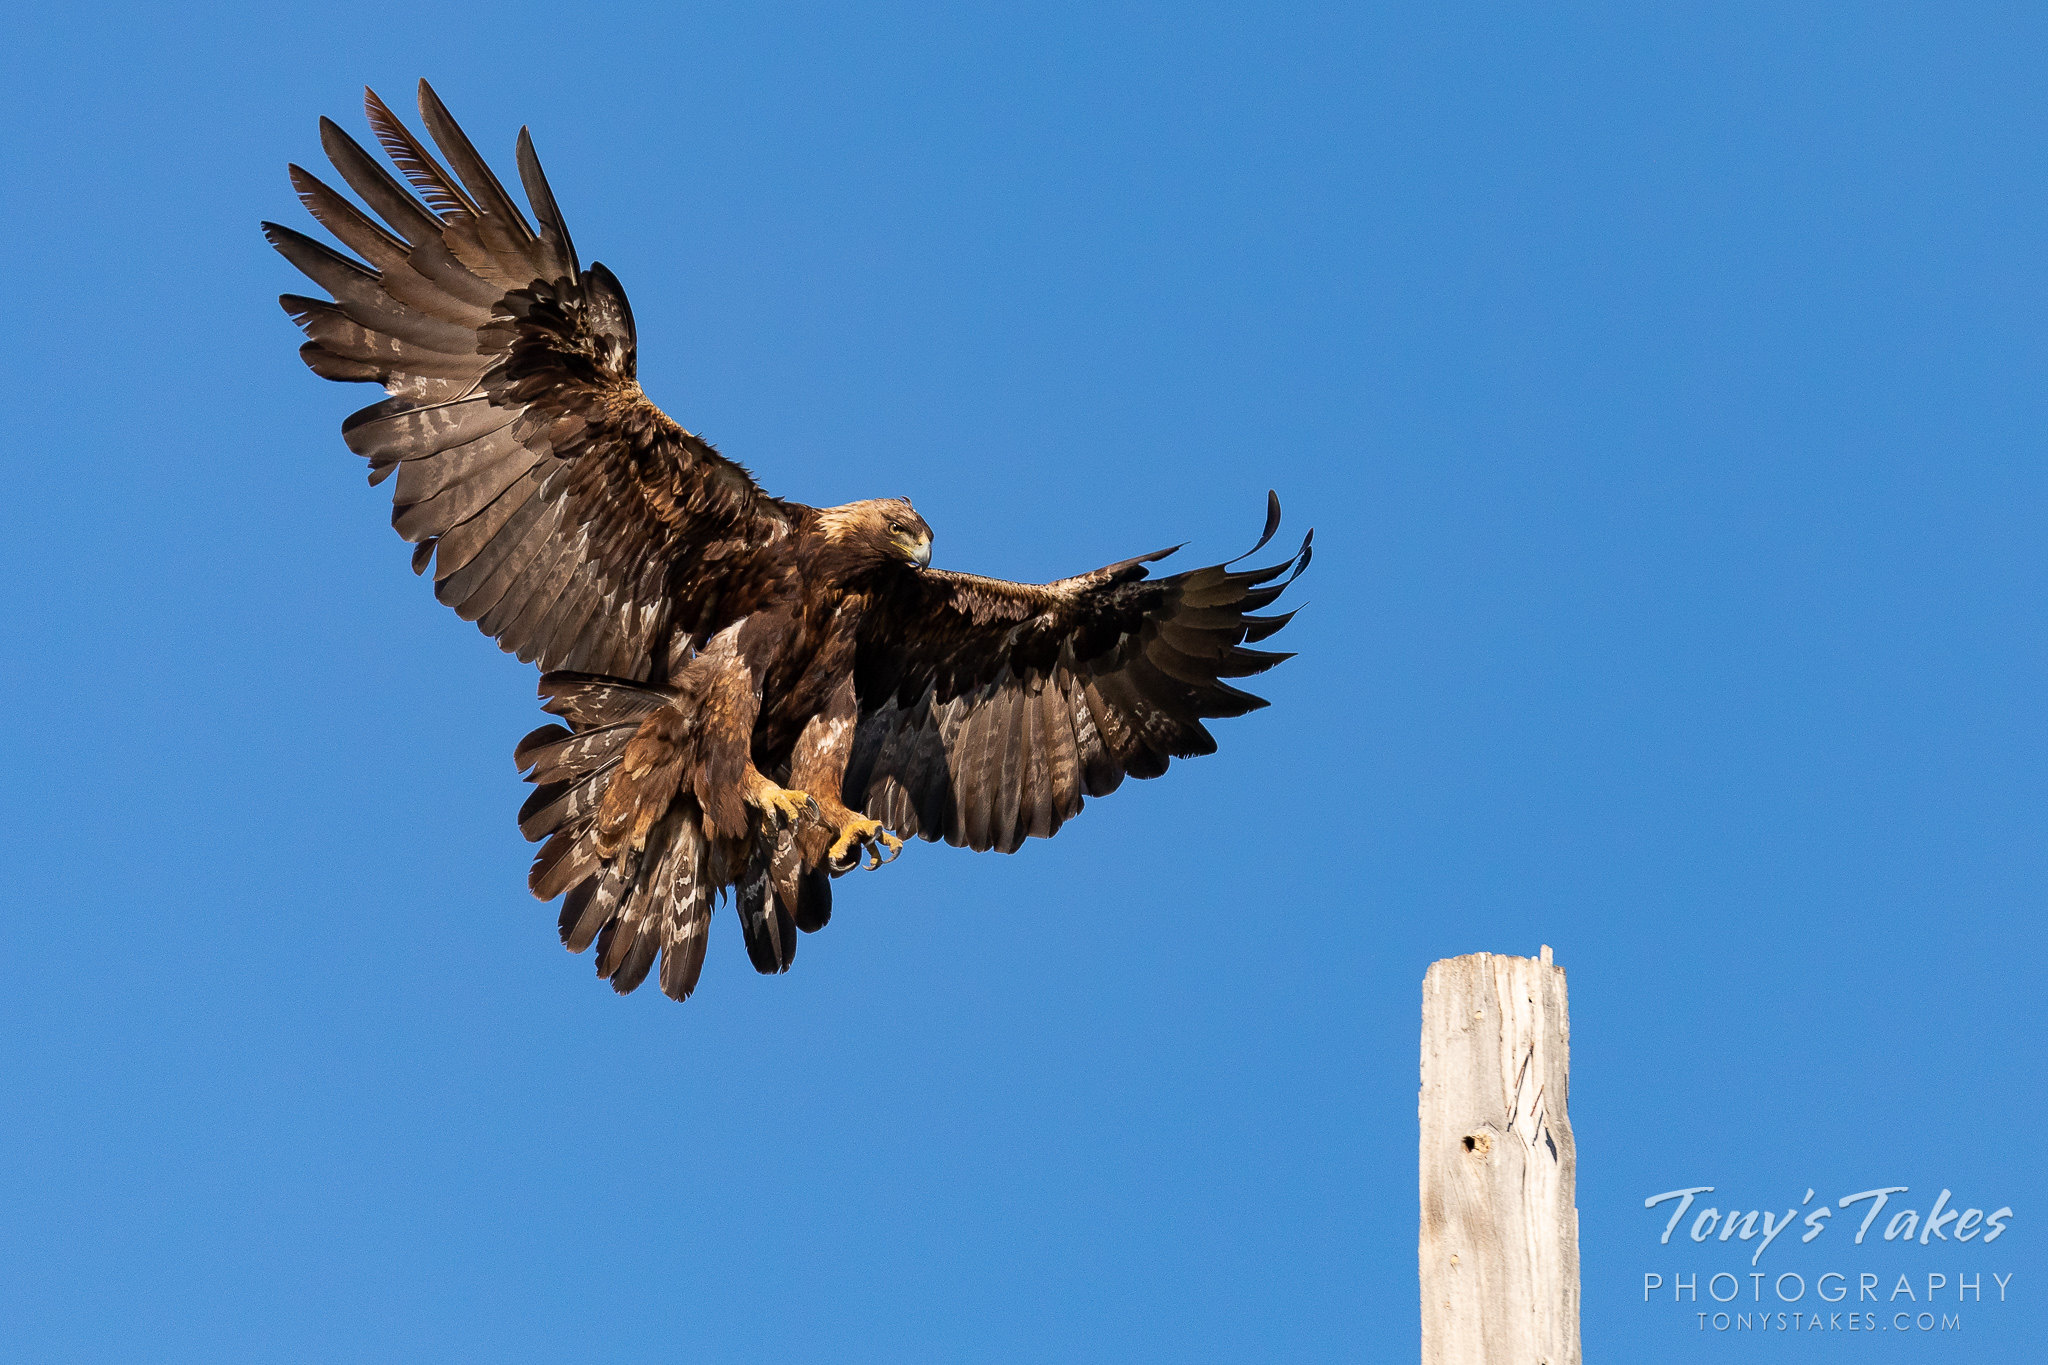 A female golden eagle preps for landing on a pole. (© Tony's Takes)